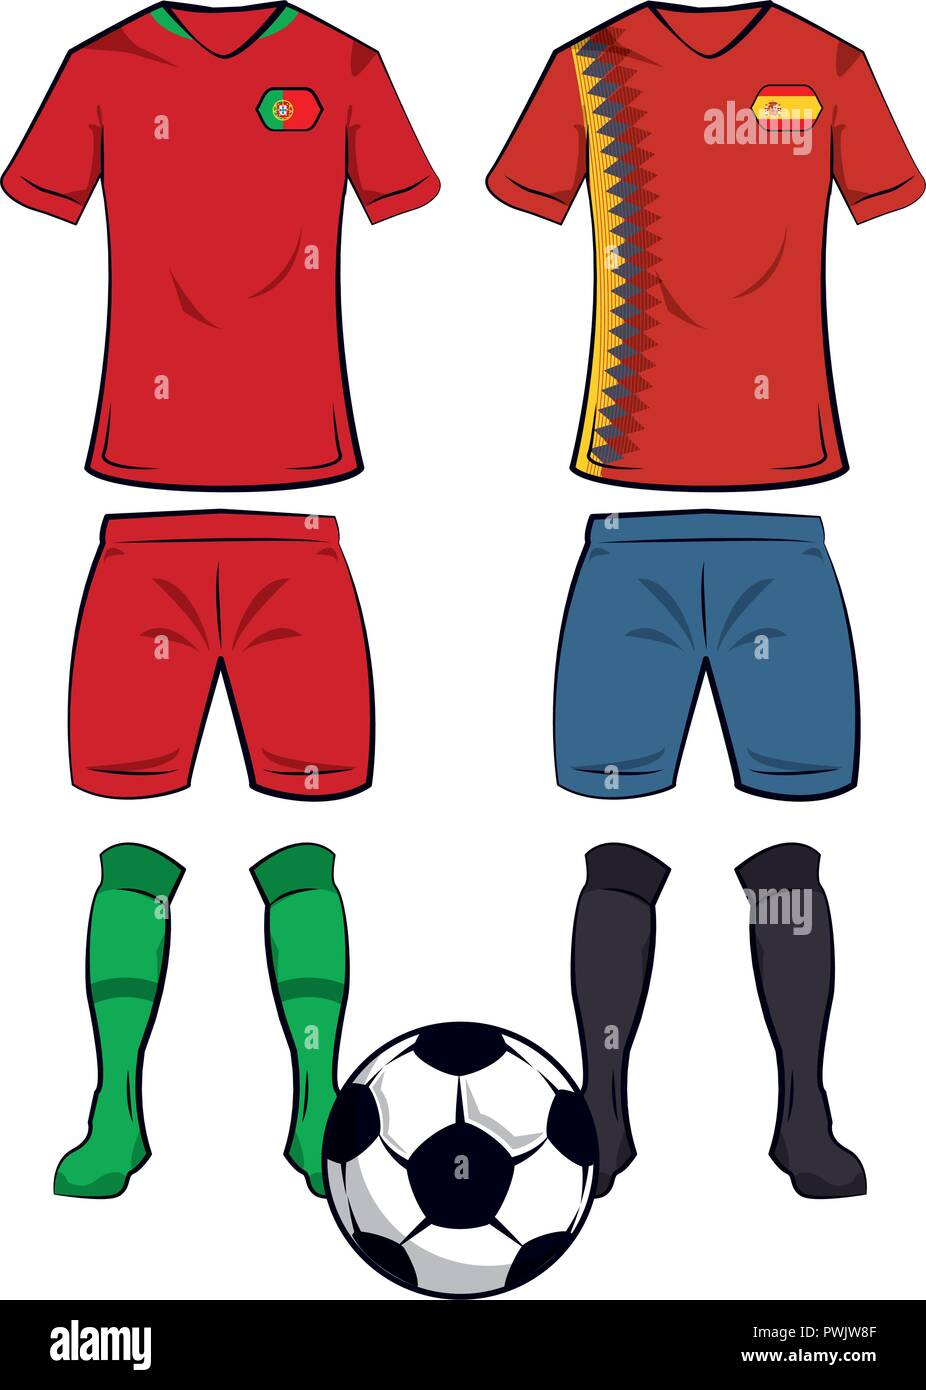 a431e29a0 Soccer portugal and spain teams uniforms and ball vector illustration  graphic design